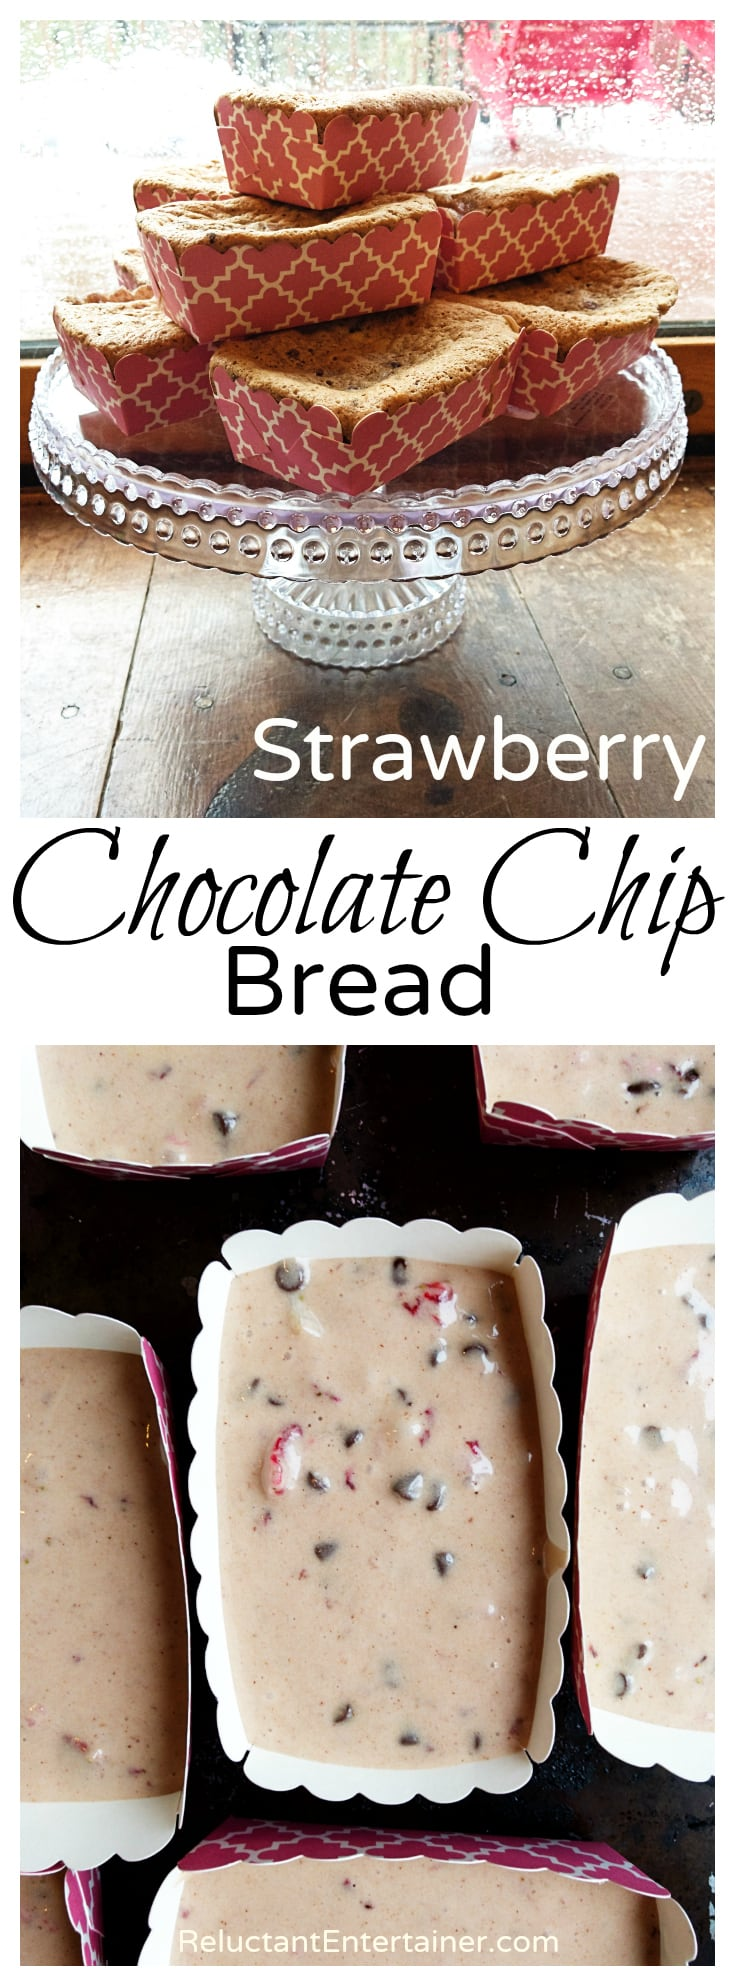 Strawberry Chocolate Chip Bread Recipe - Reluctant Entertainer